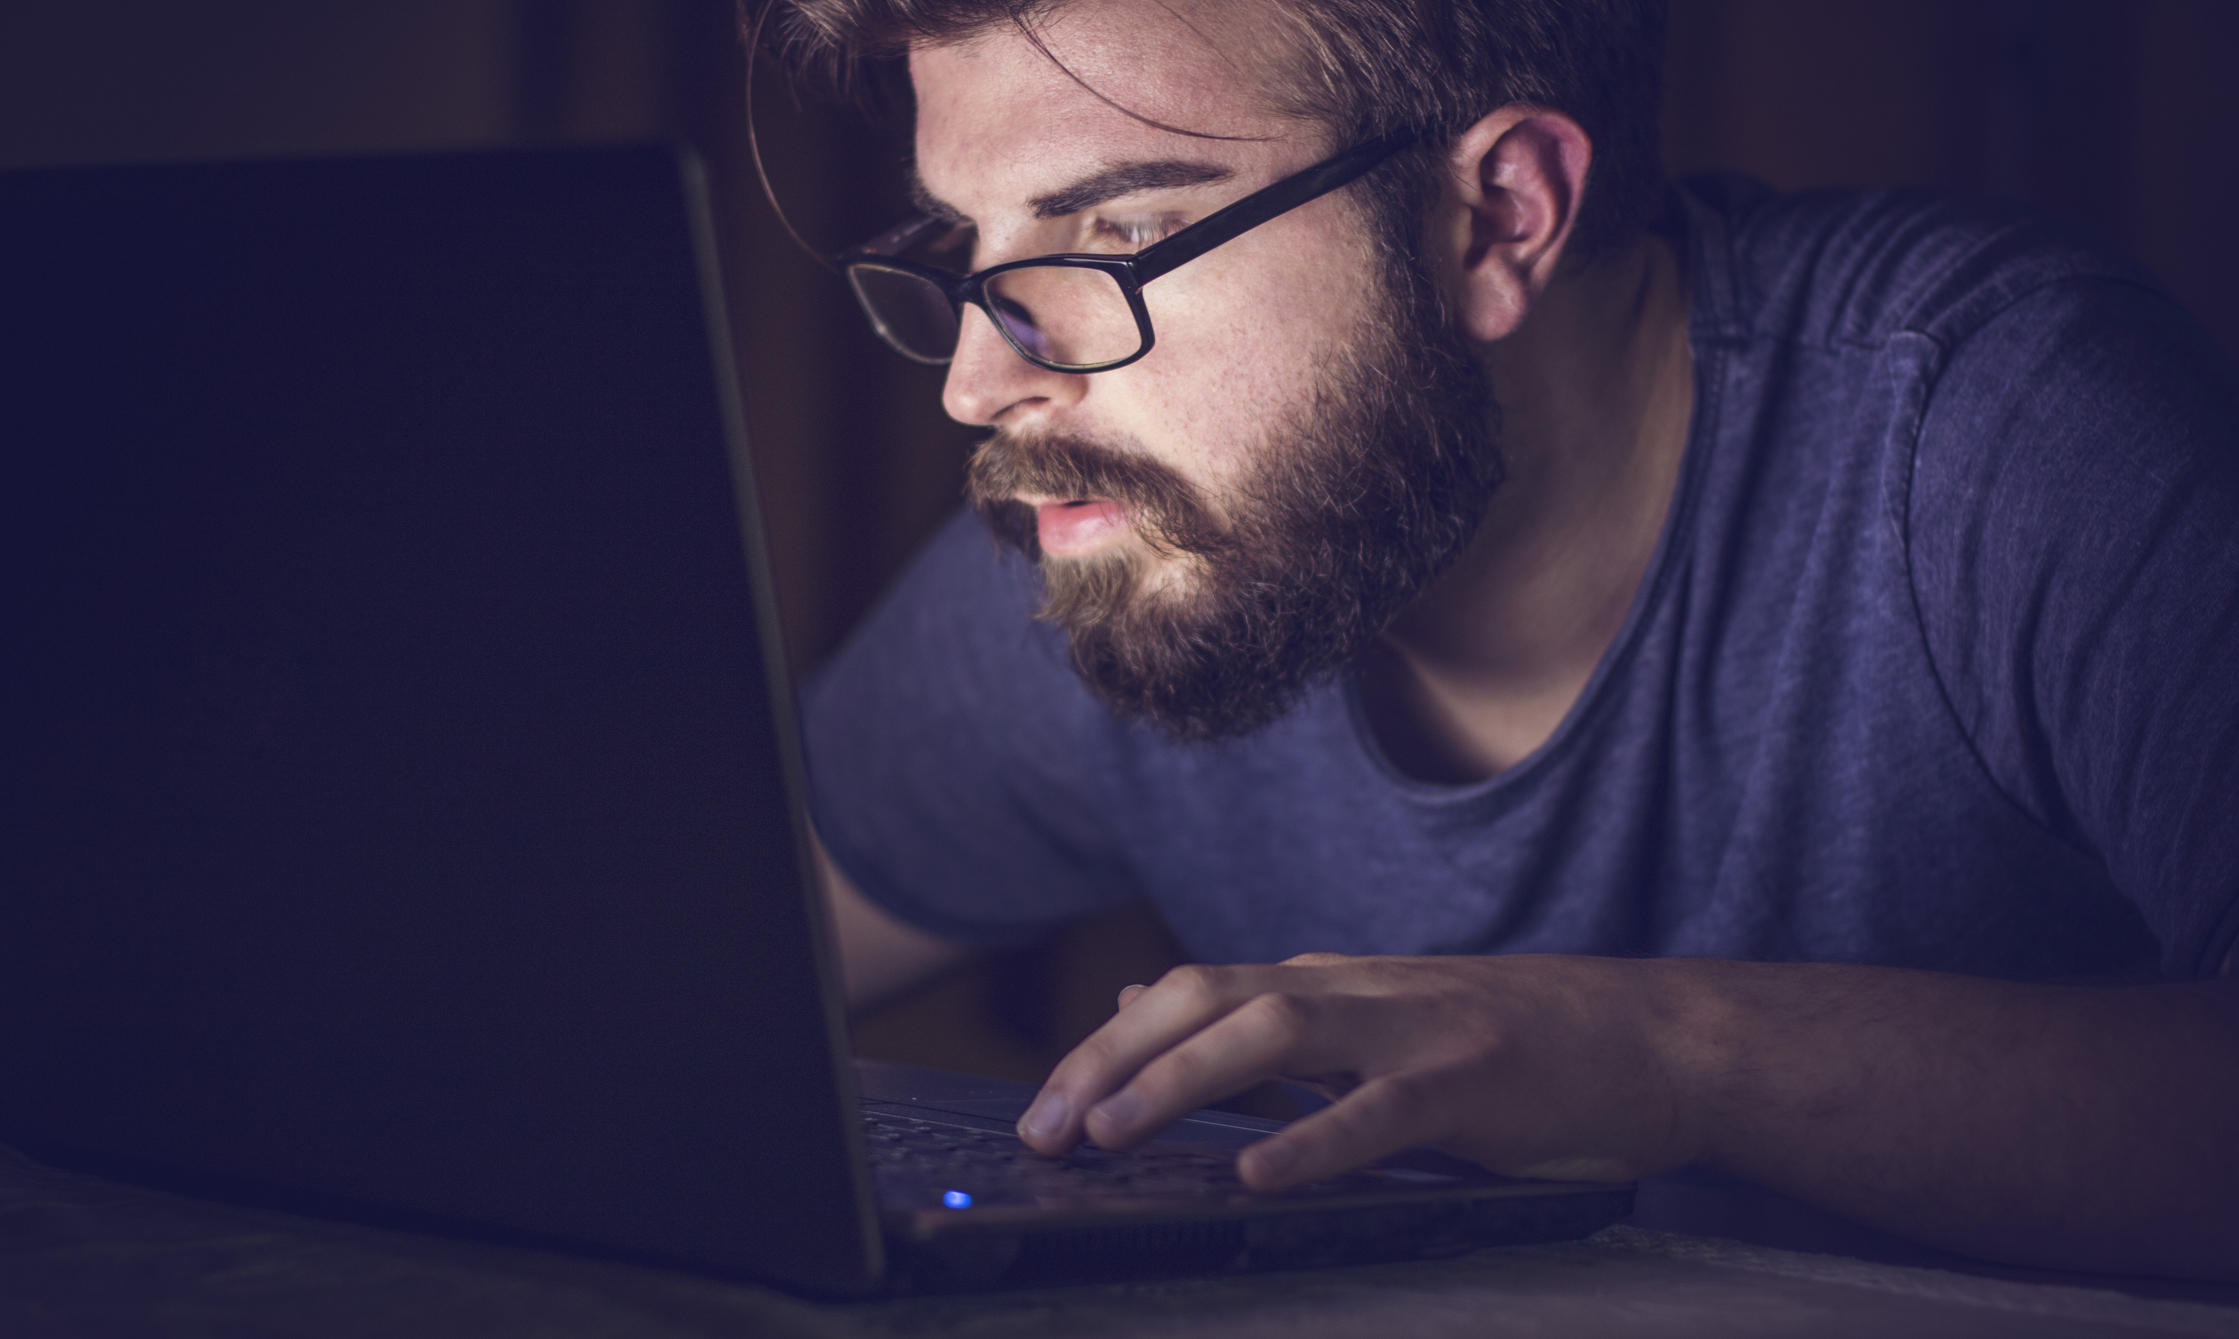 Bearded man working on his laptop late night